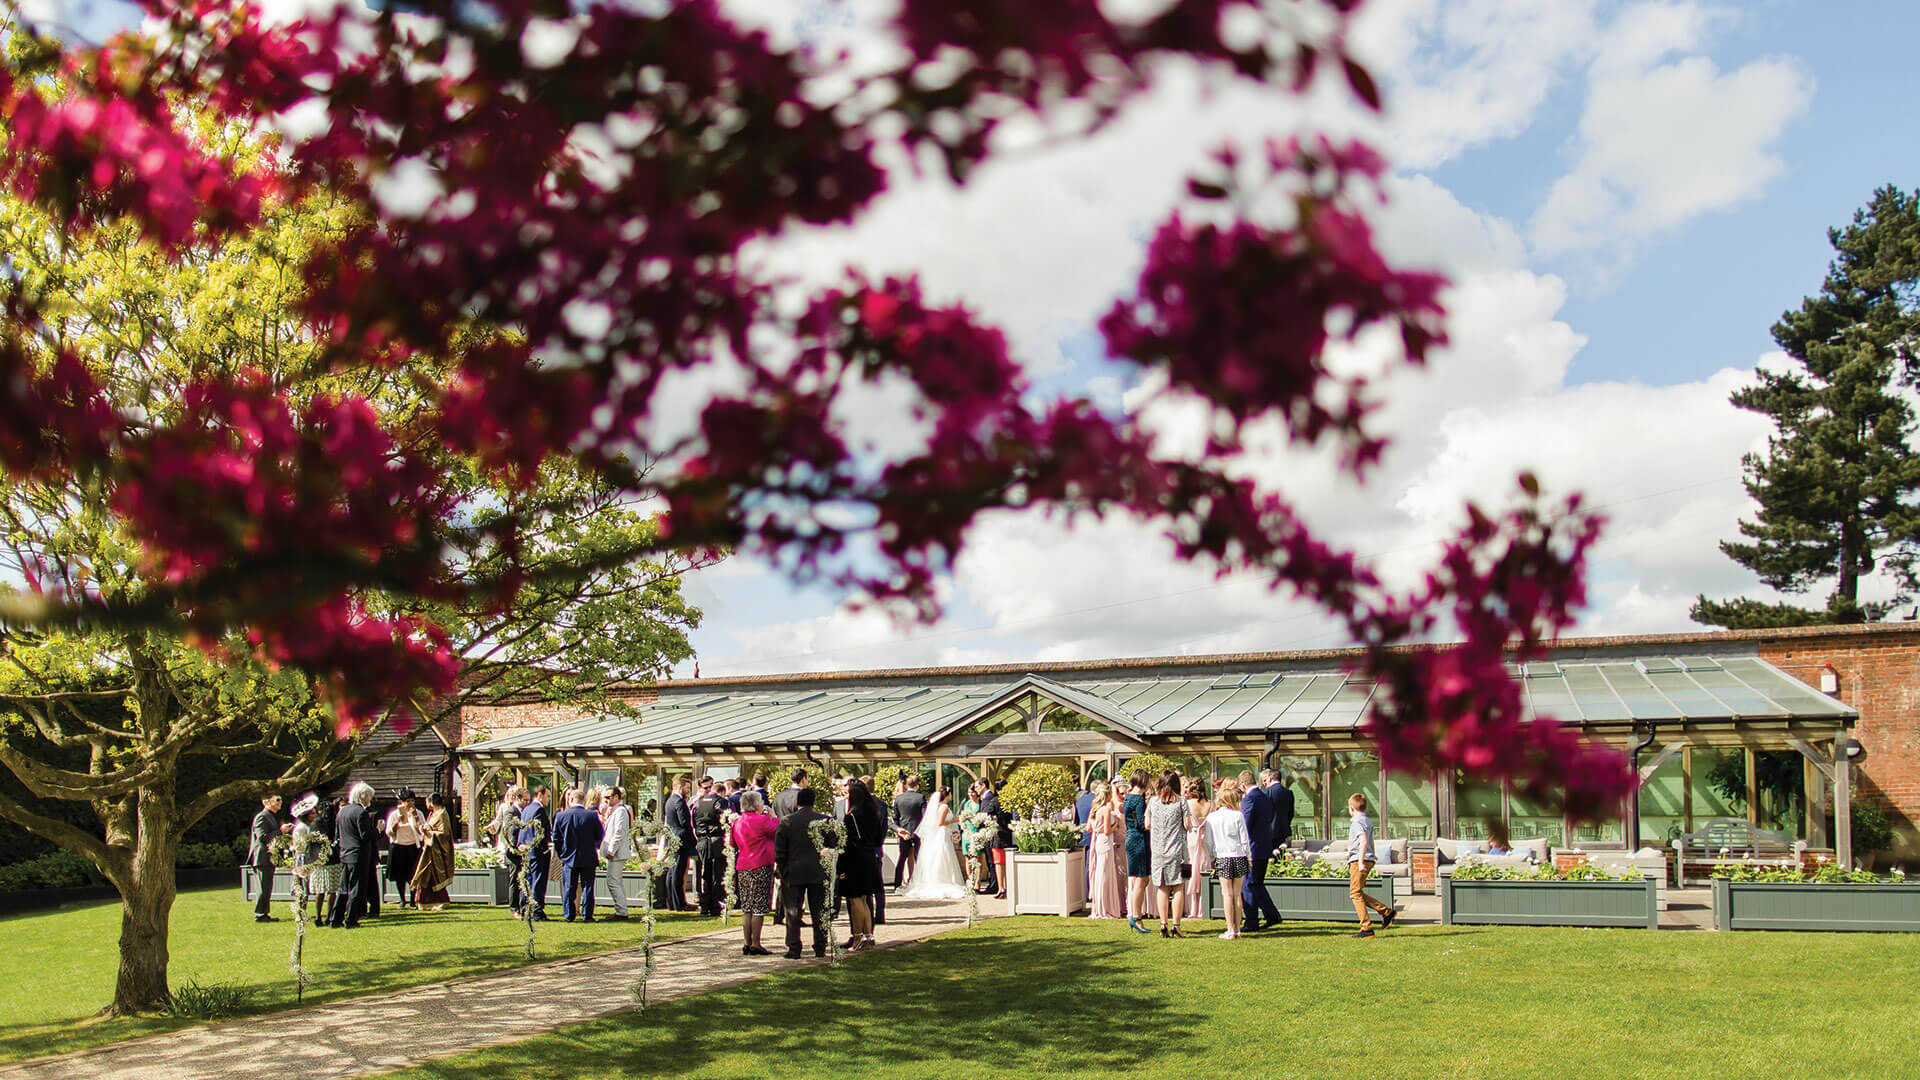 The Orangery is set at the end of the Long Walk in the beautiful Walled Garden at Gaynes Park wedding venue